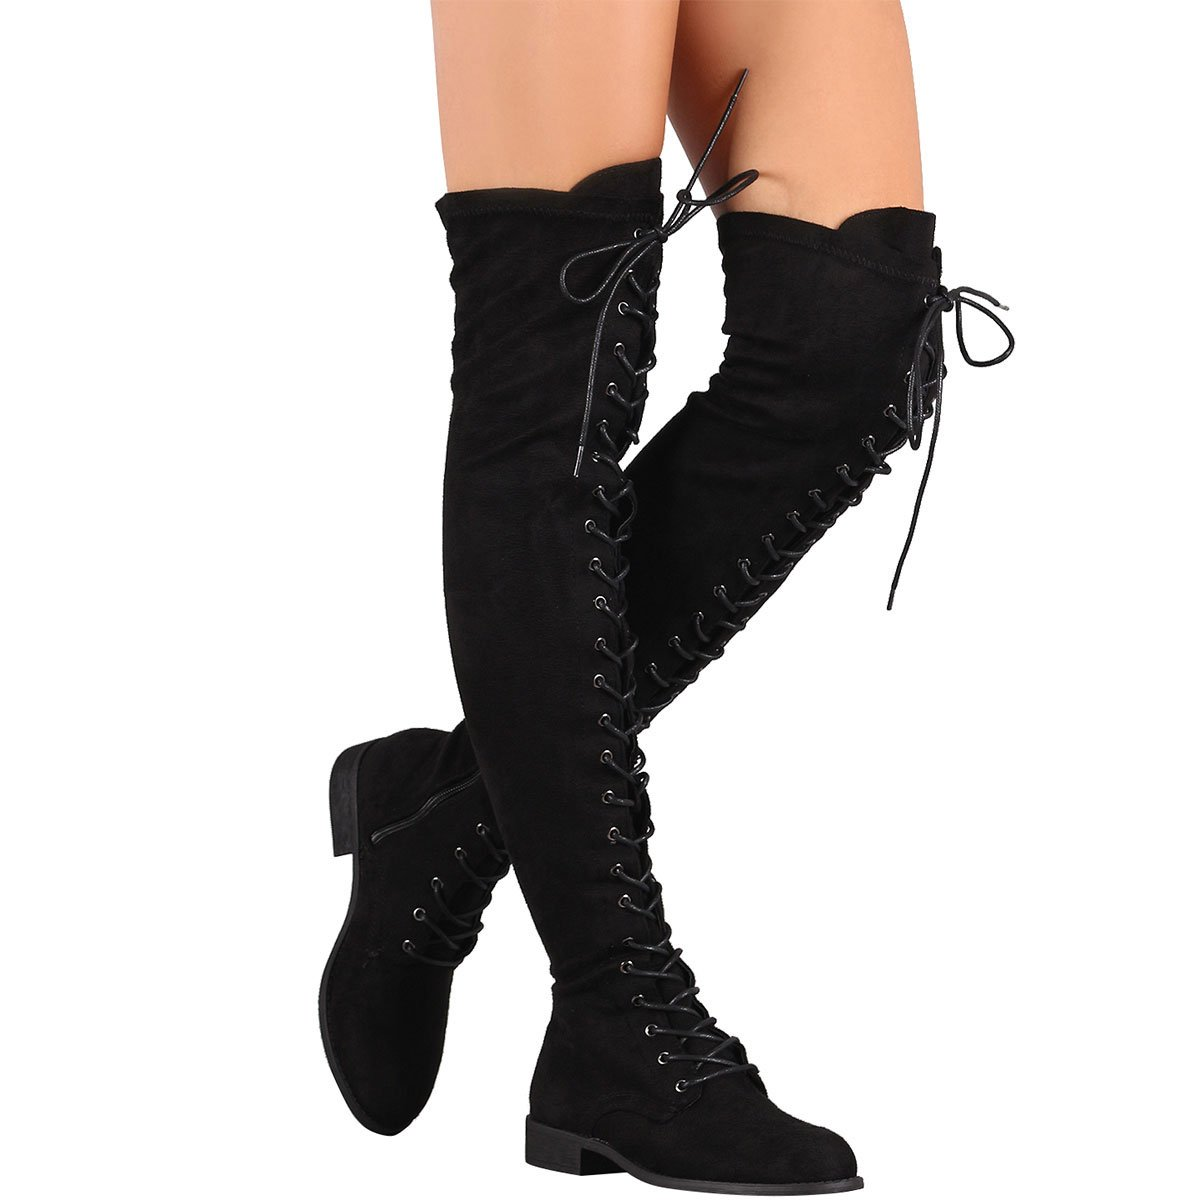 bde943a4494 Wild Diva Womens Round Toe Vegan Suede Military Combat Lace Up Over The  Knee Boots